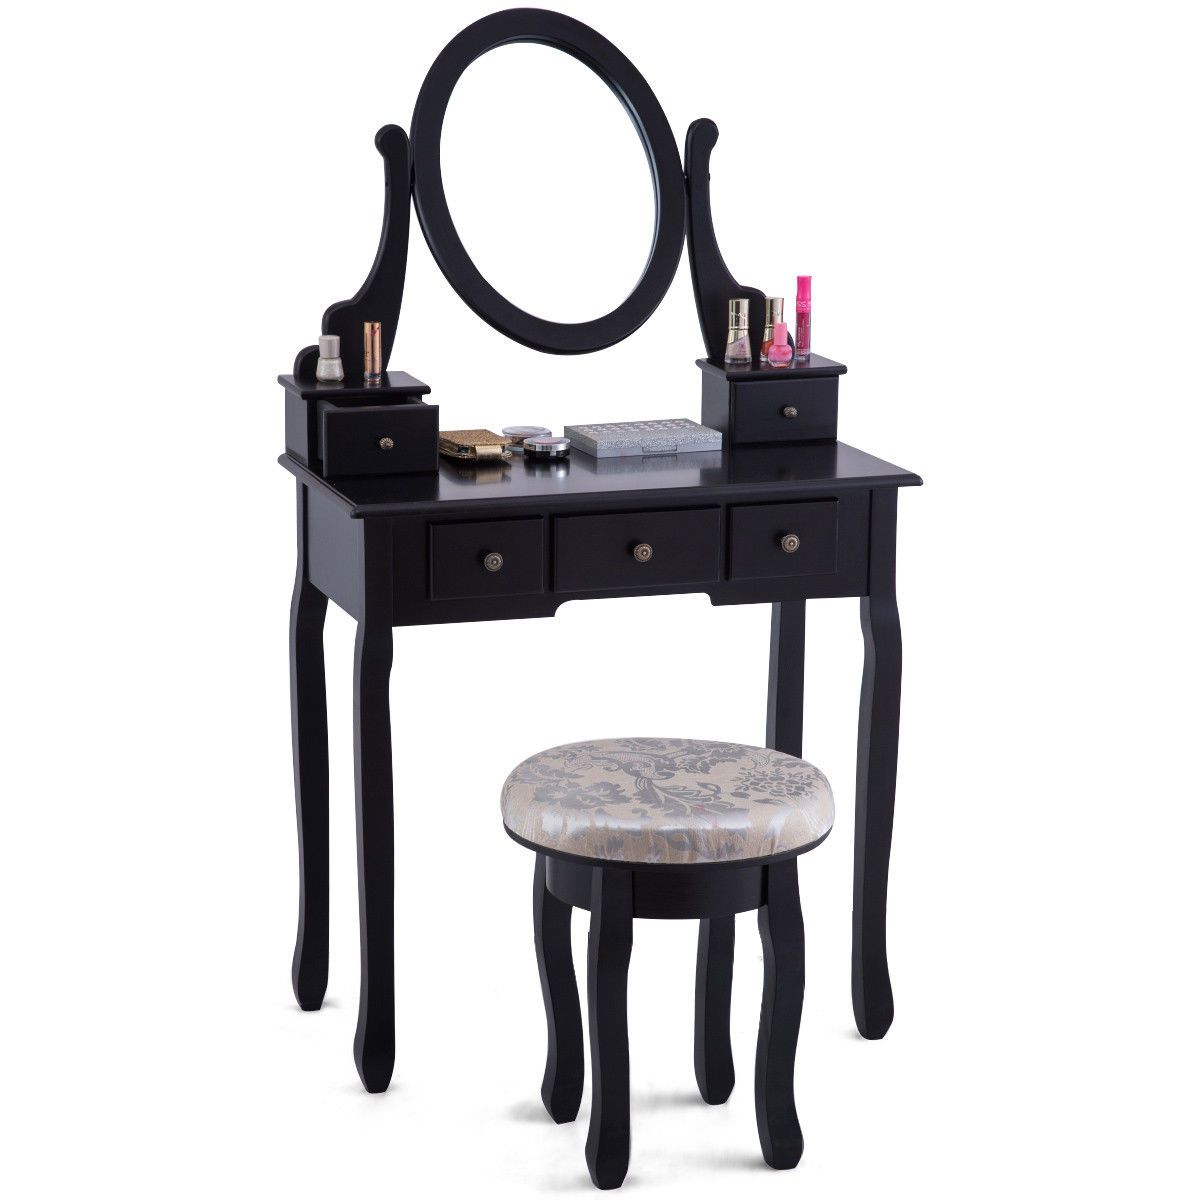 Giantex Vanity Table Set Modern Bedroom Makeup Mirror Dressing Table Cushioned Stool With 5 Drawers Wood Dressers Hw56028 Vanity Table Sets Mirrored Dressing Tabledressing Table Aliexpress